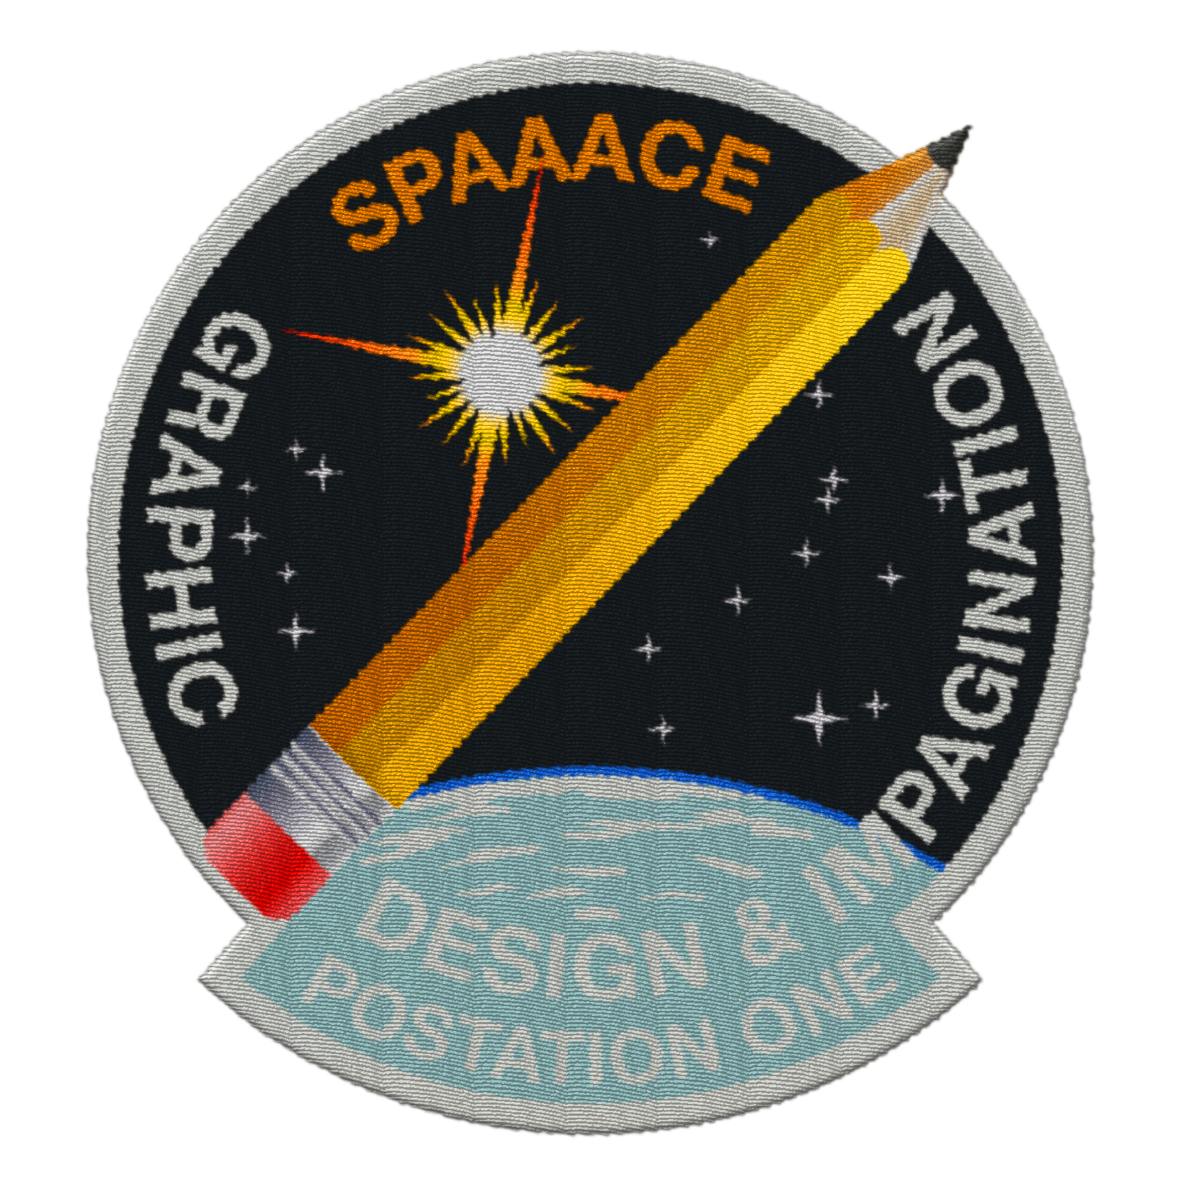 Spaaace - patch graphic design